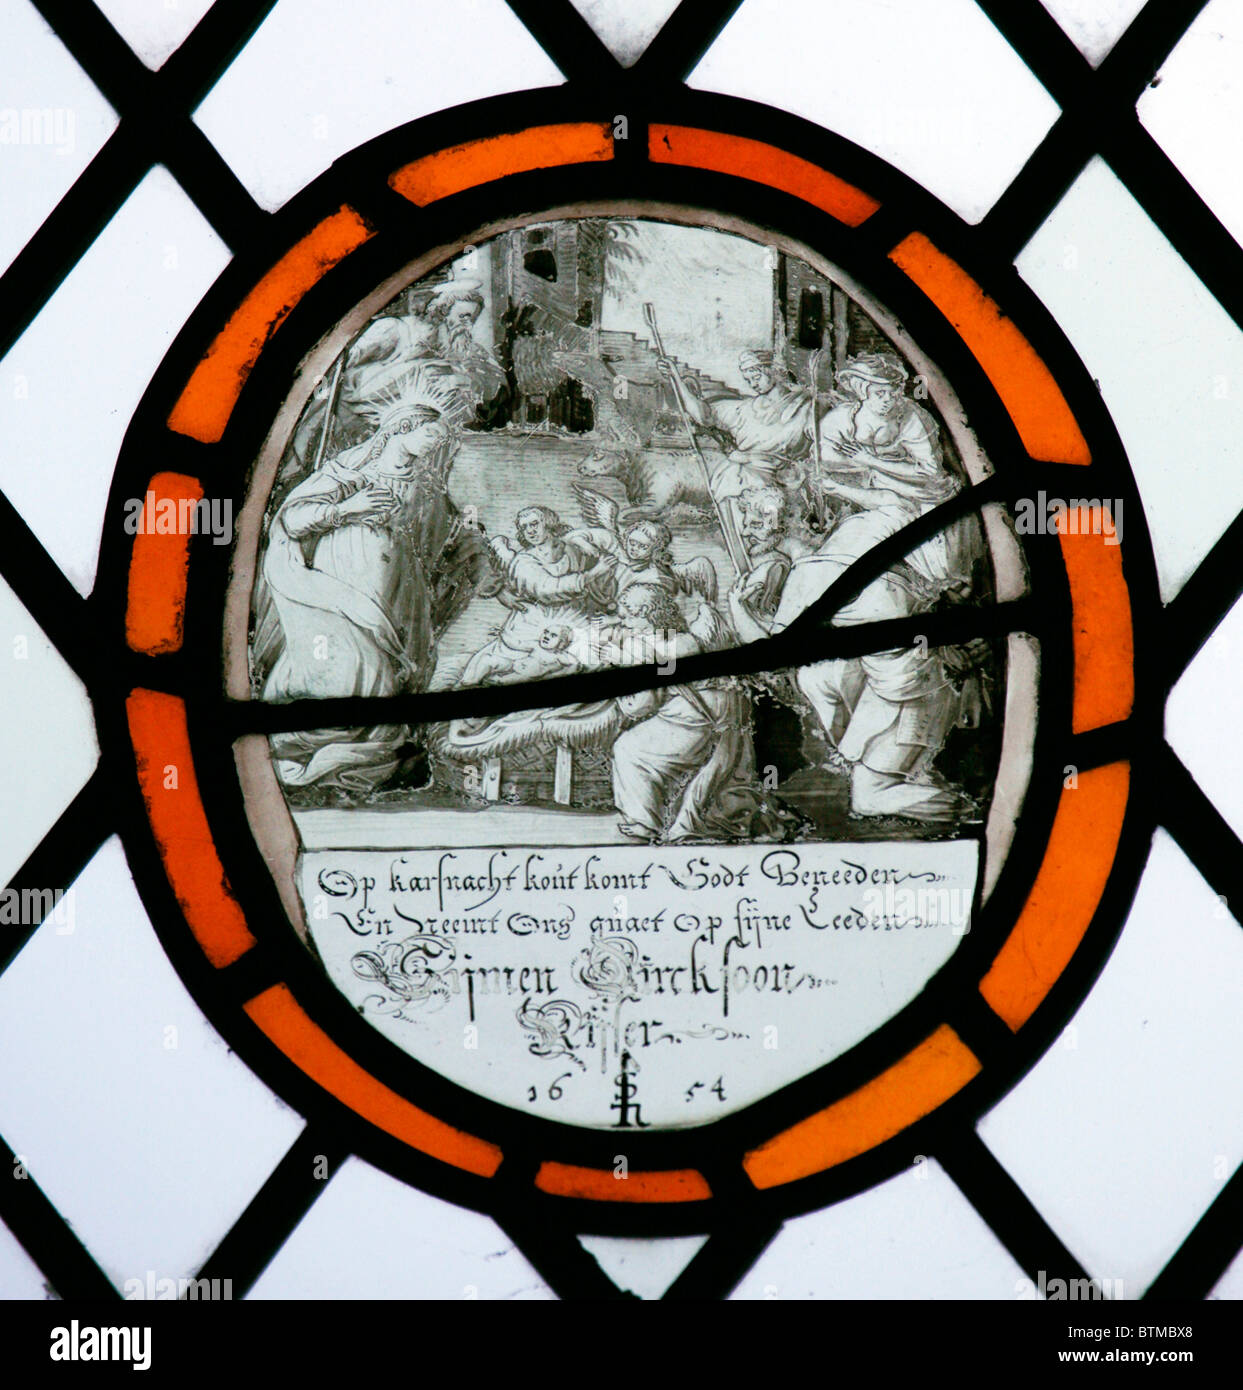 A Stained glass window depicting The Adoration of the Shepherds, Flemish School, 17th century - Stock Image